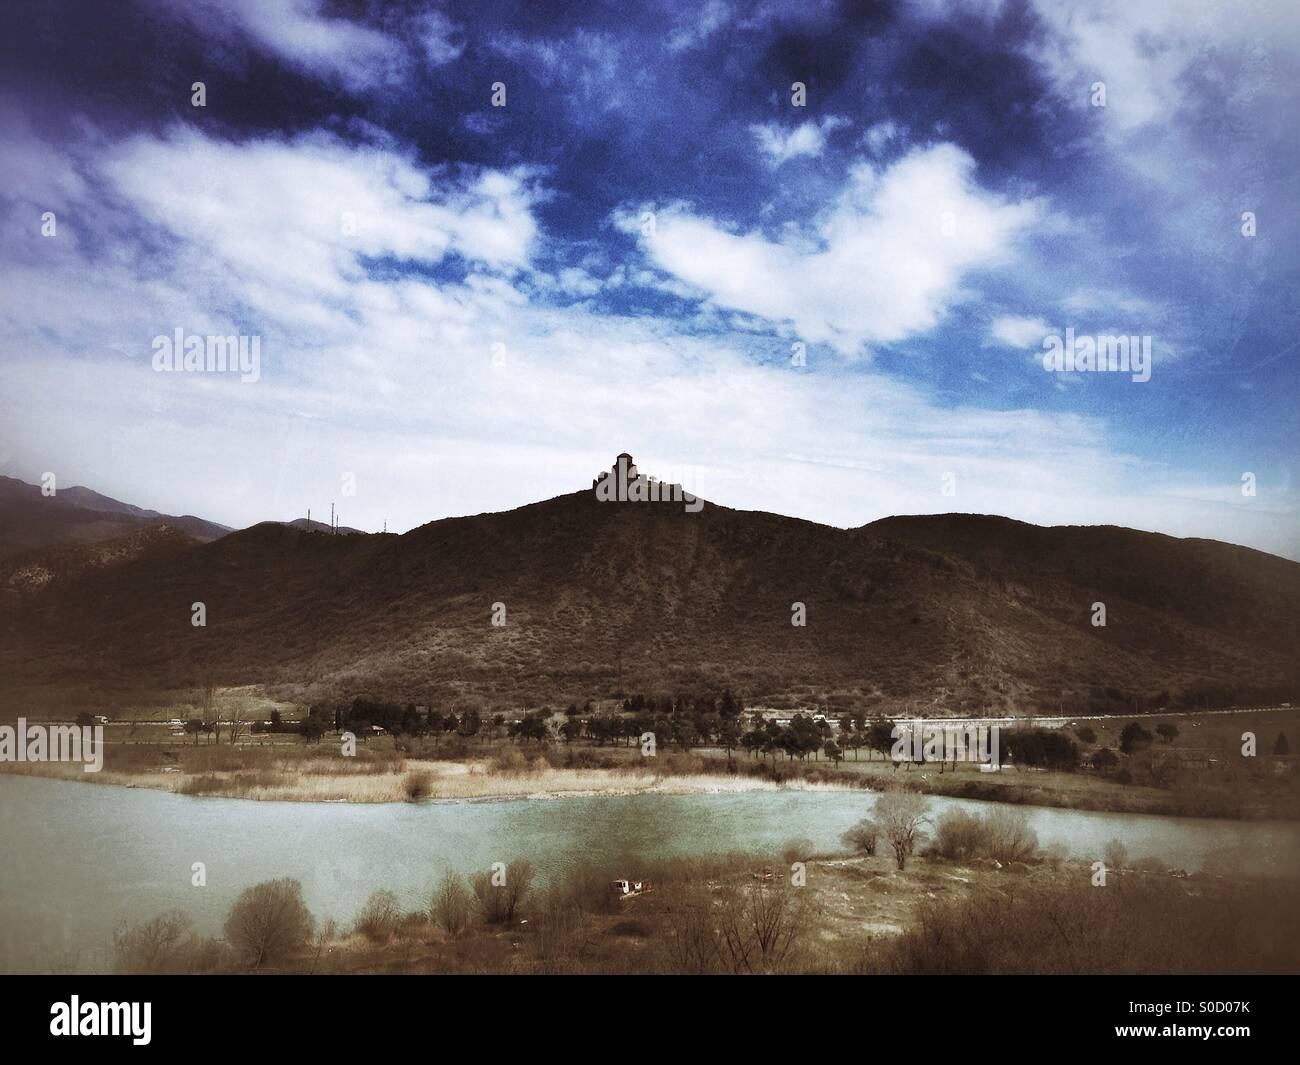 Jvari Monastery sitting on a distant hillside across the meeting point of the Mtkvari and Aragvi rivers. Landscape - Stock Image